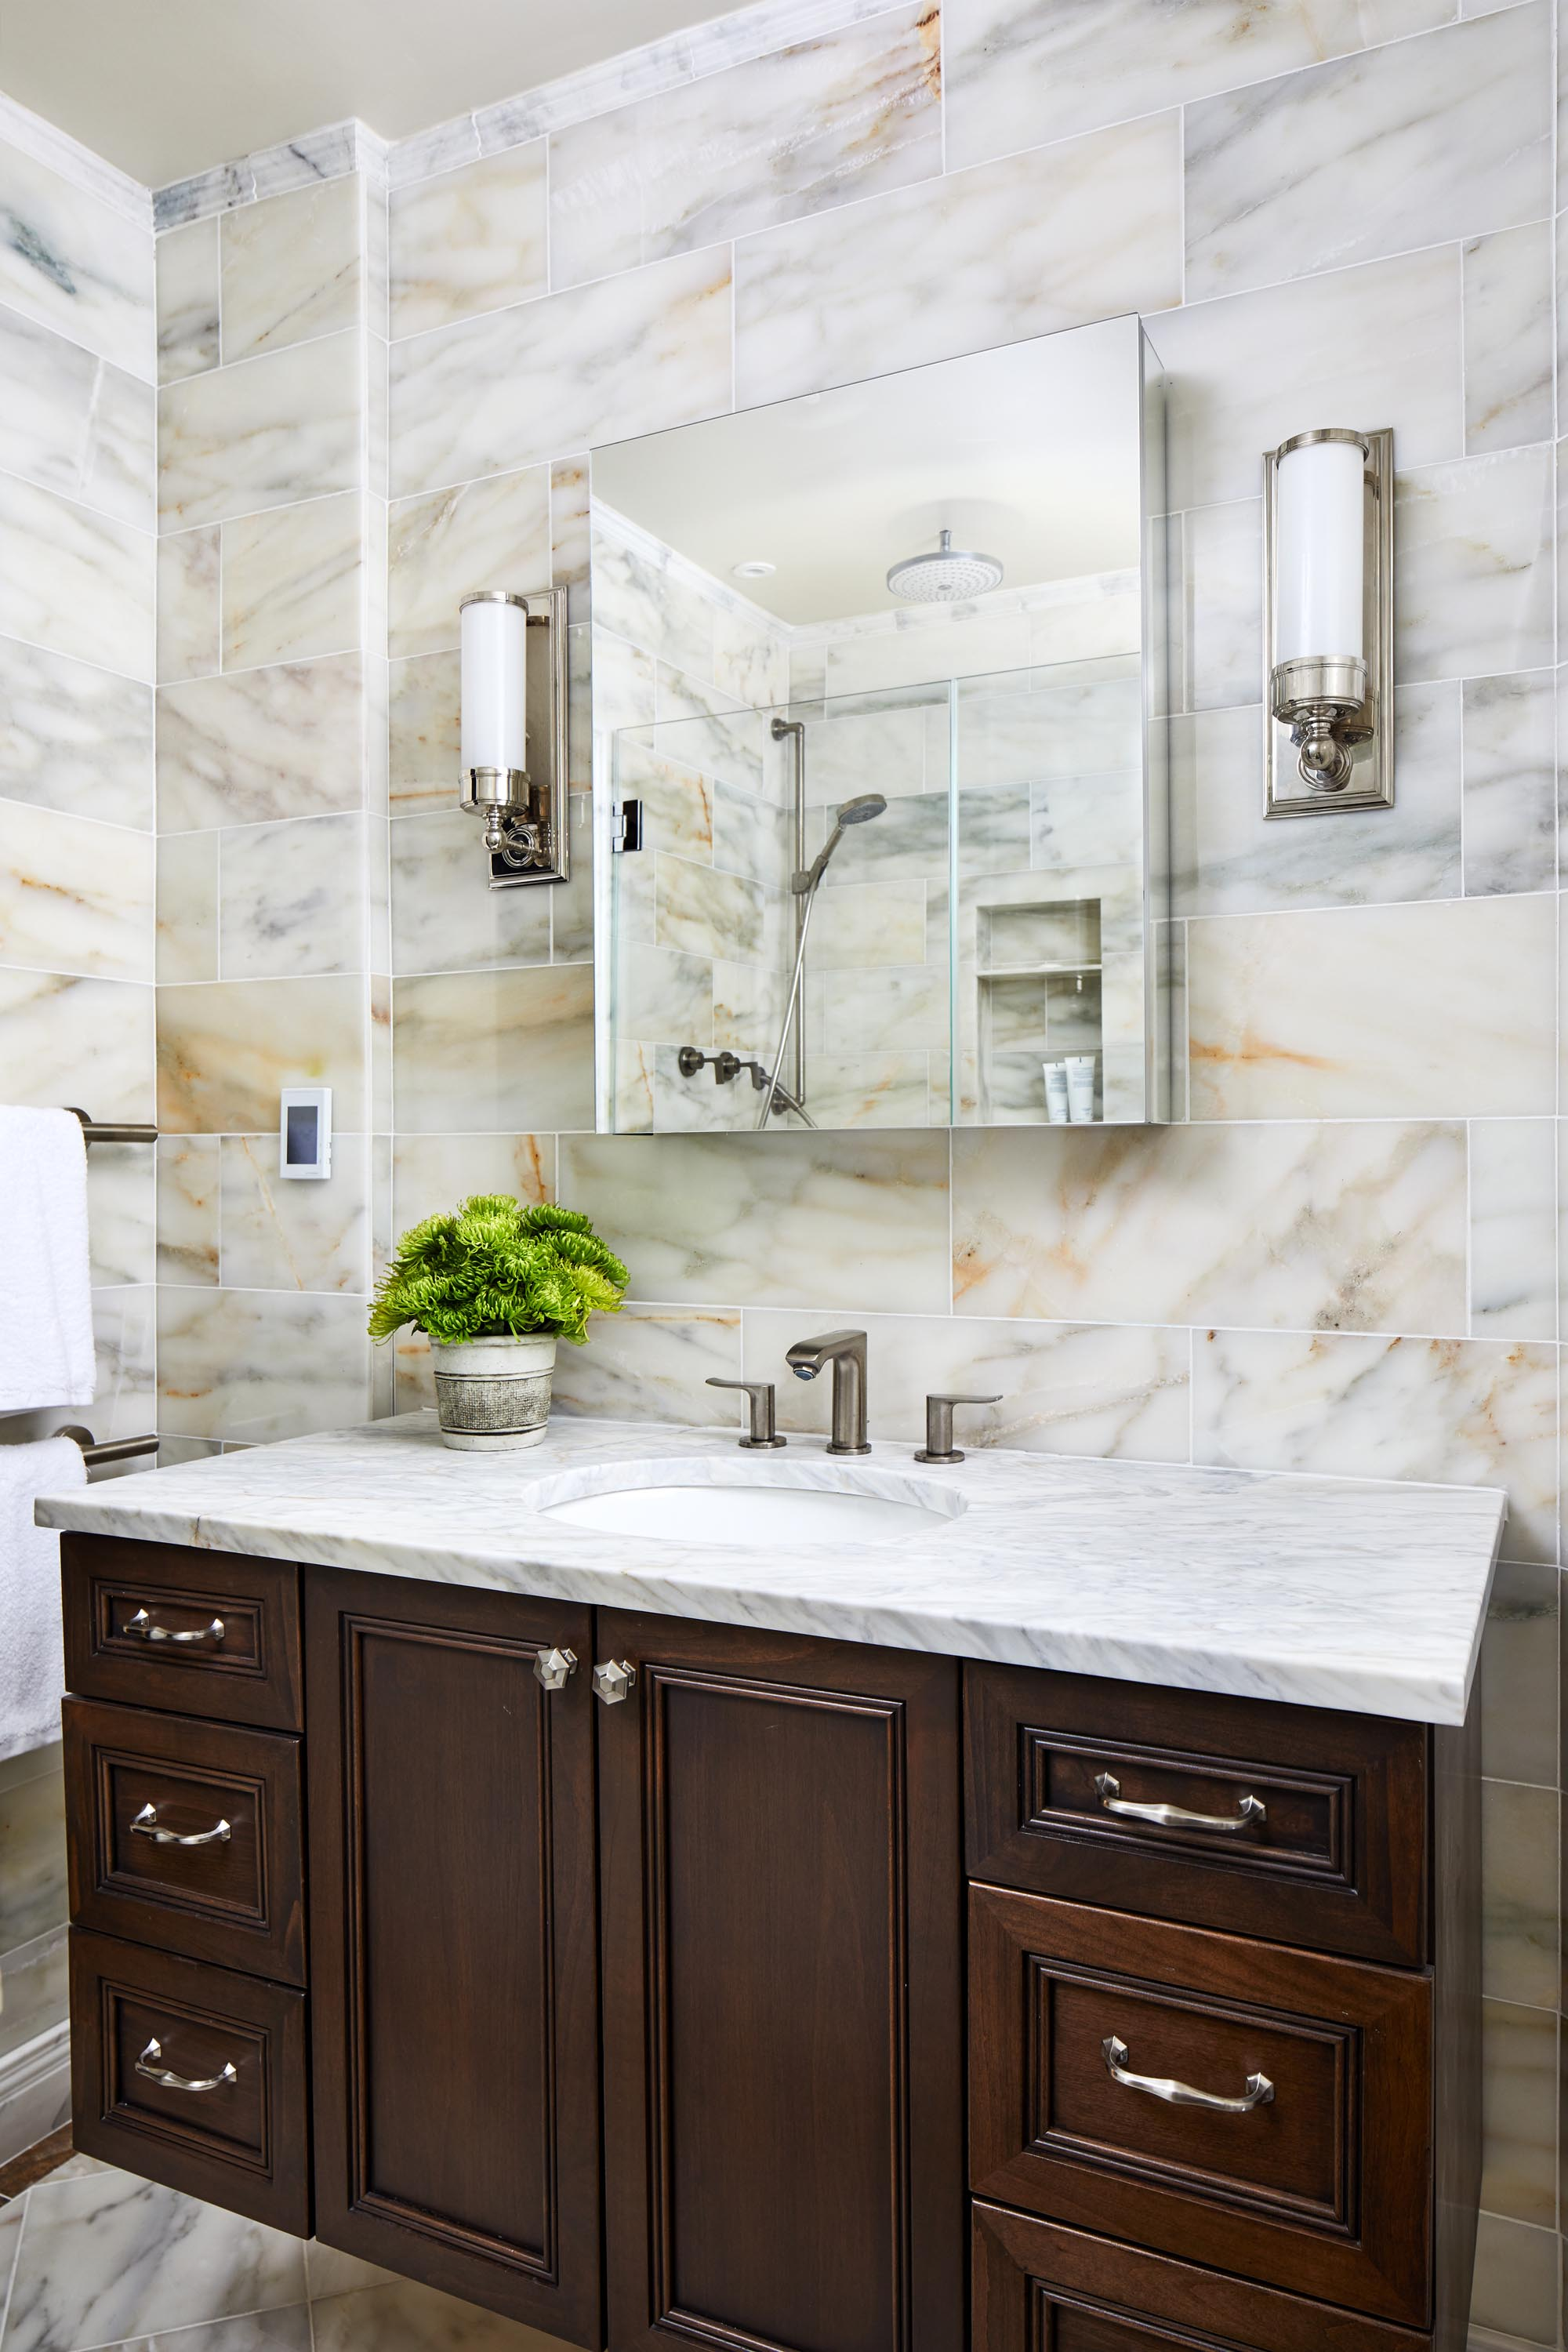 23-Modern-Contemporary-Marble-Bathroom-Top-Decorator-Best-Interior-Designers-Boston-South-End-Back-Bay-Seaport-Dane-Austin-Design.jpg